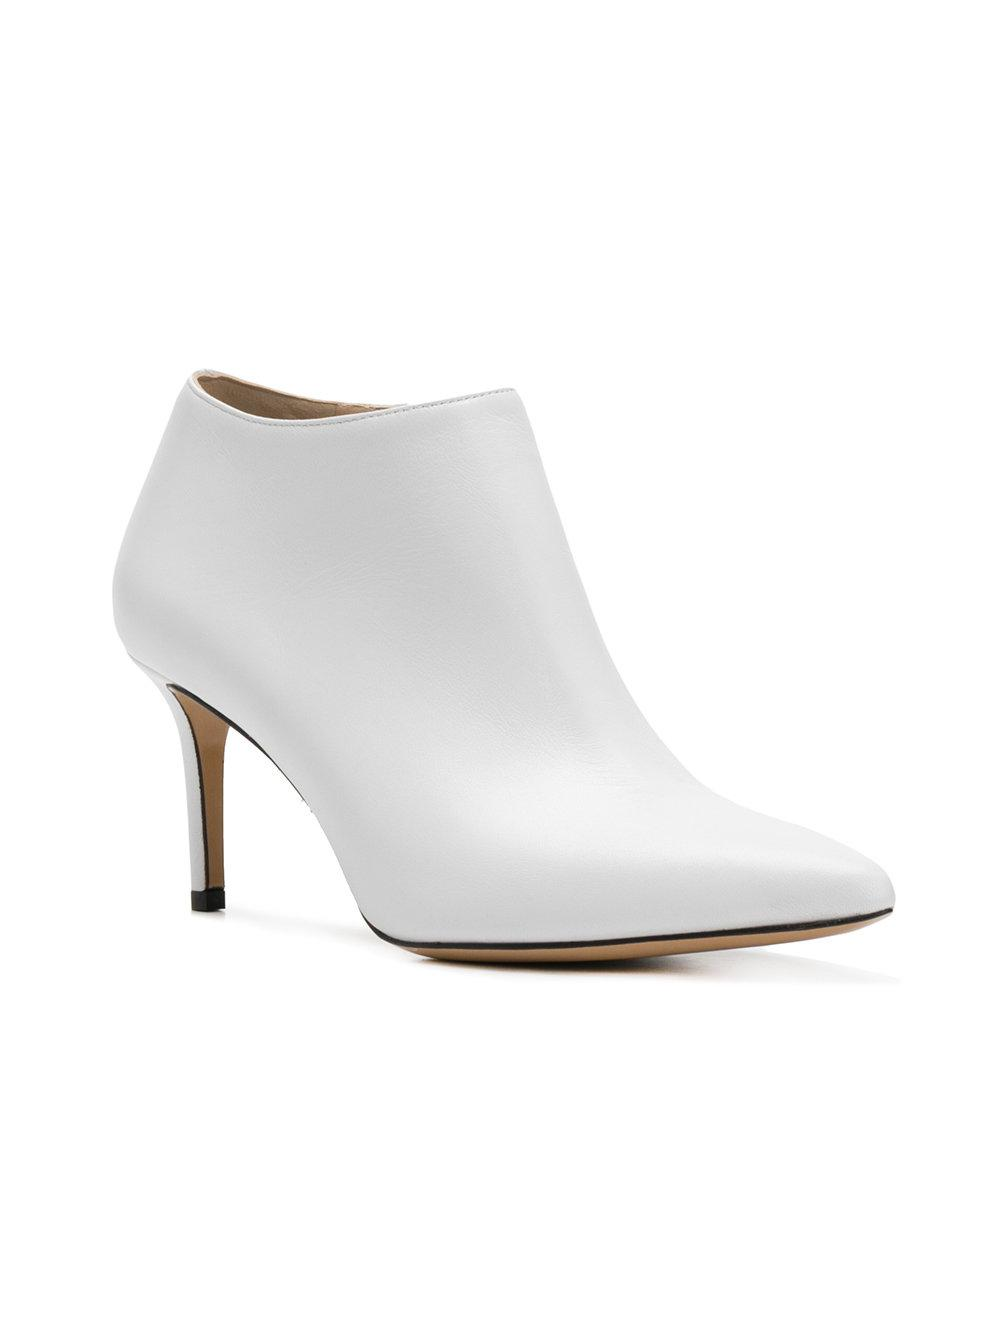 Marc Ellis Leather Pointed Toe Boots in White